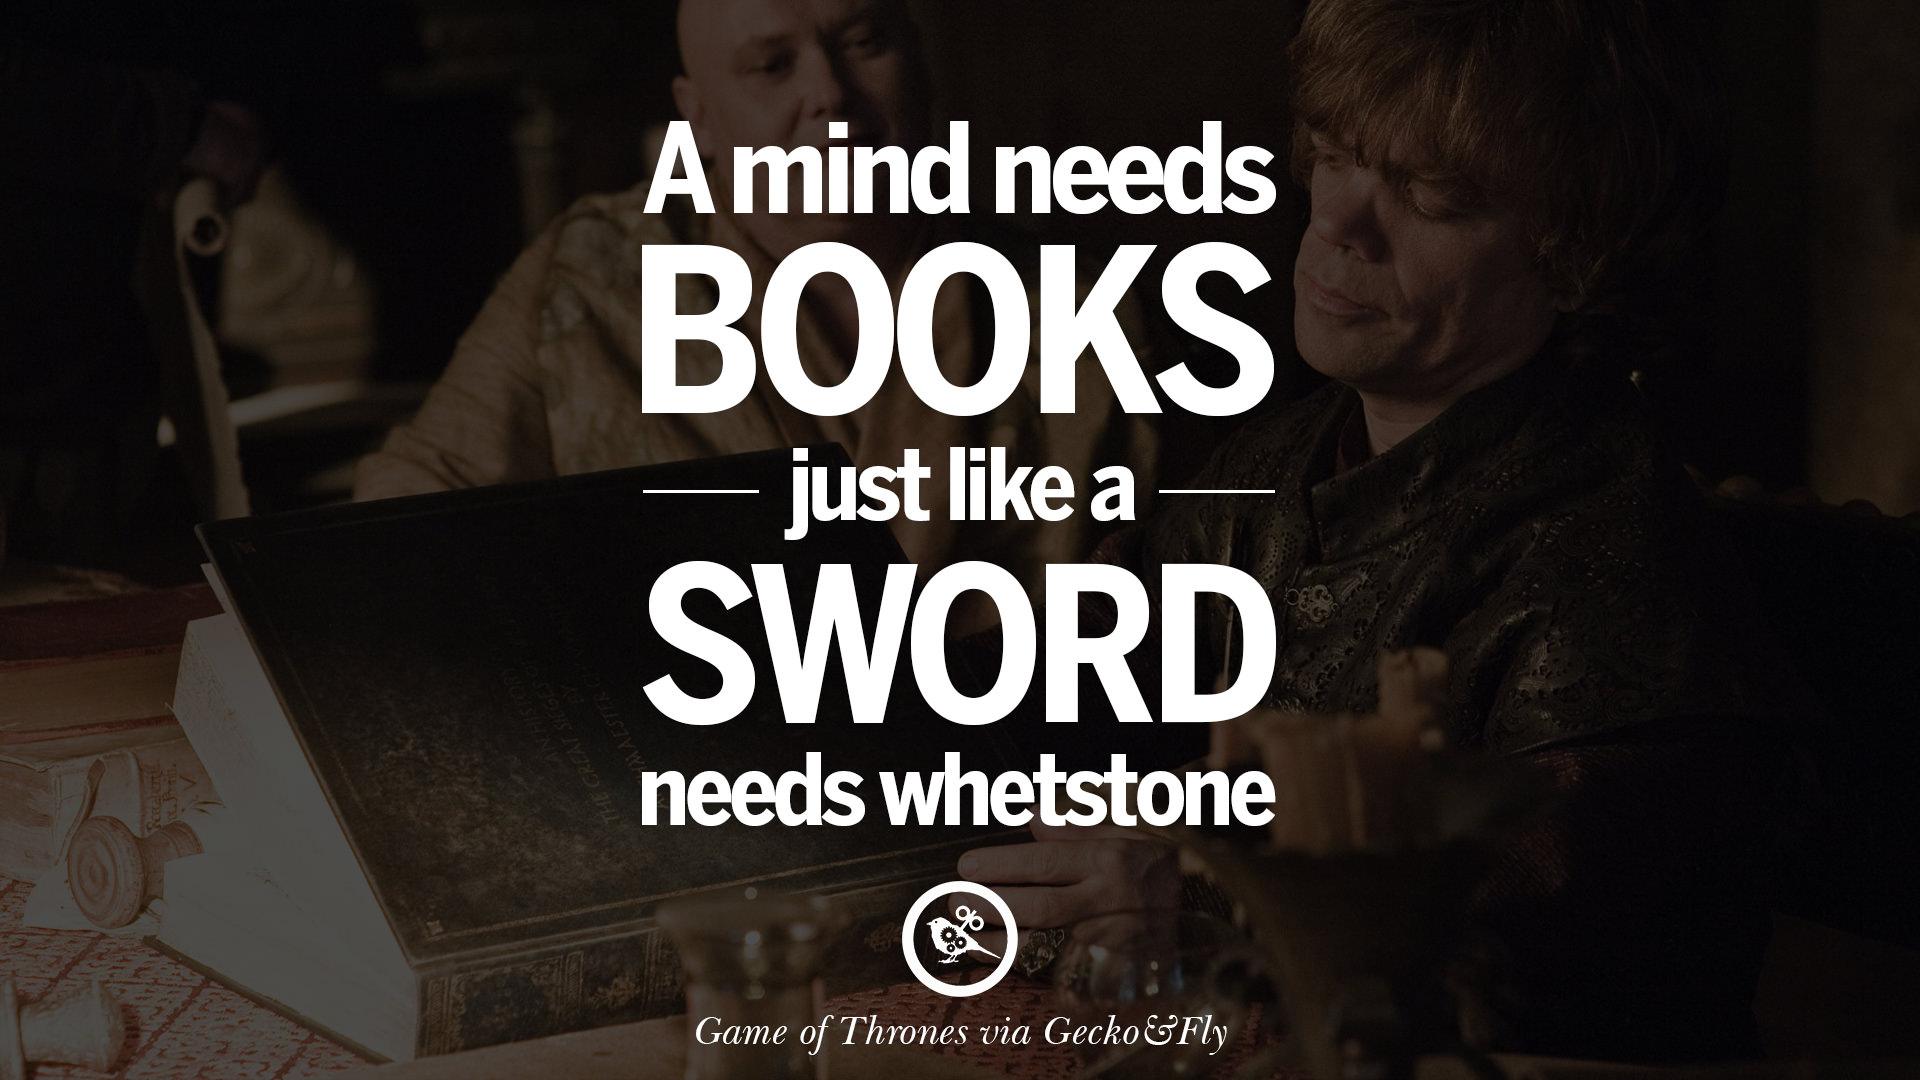 15 Memorable Game of Thrones Quotes by George Martin on ...